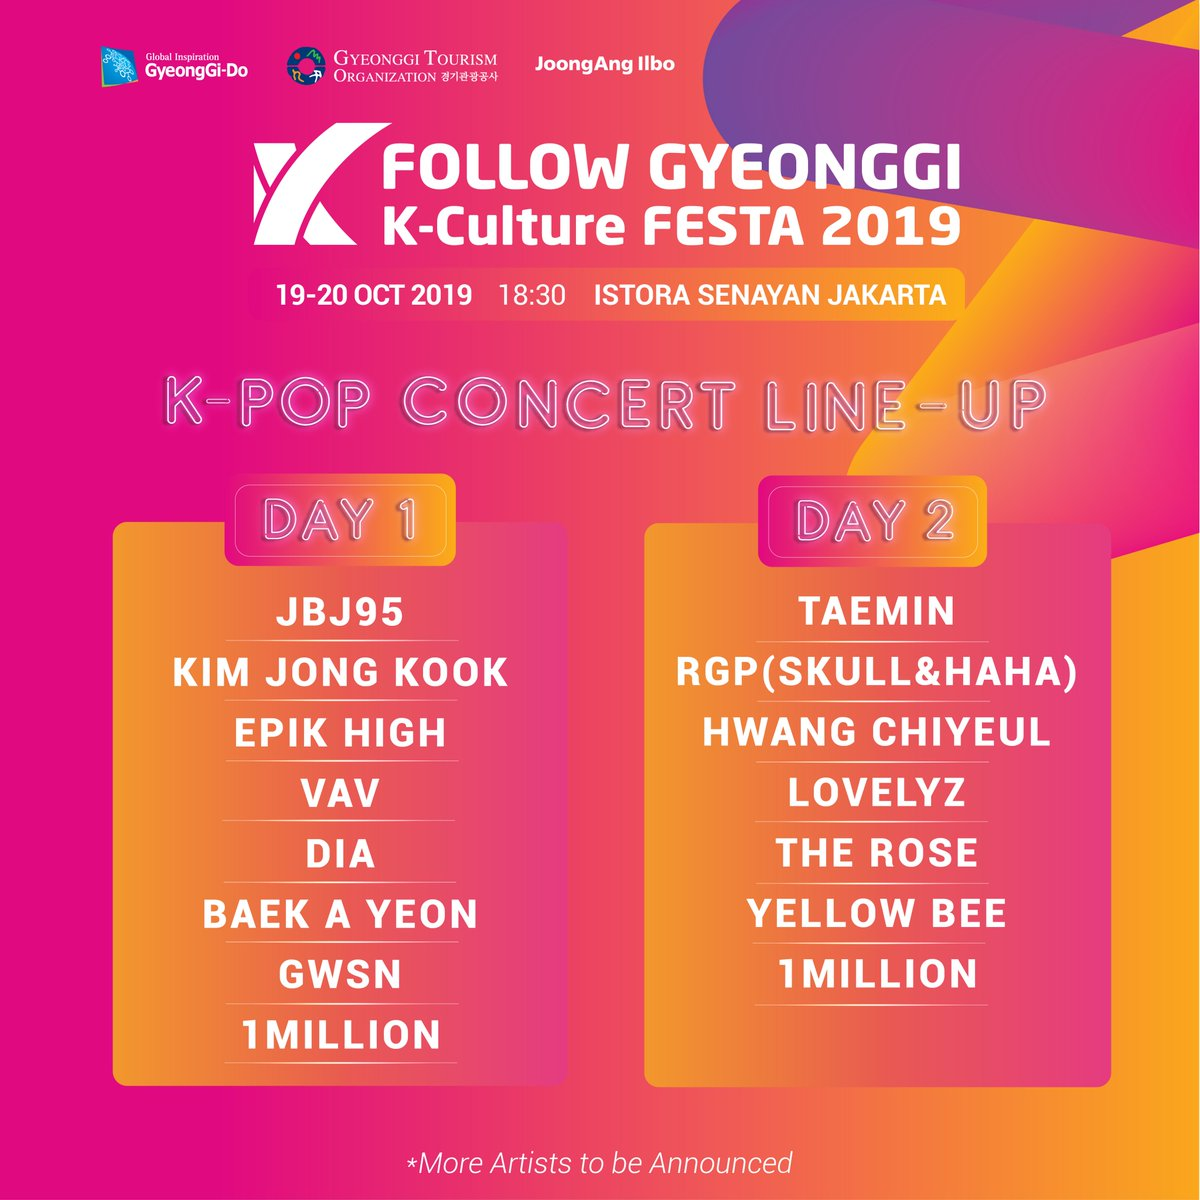 Annyeonghaseyo!  We are delighted to announce that Follow Gyeonggi K-Culture FESTA 2019 will be coming to Jakarta with many artists and fun experiences you can get. __  Save the date!   19-20 Oktober 2019  Istora Senayan - Jakarta  Tickets available soon, stay tuned! <br>http://pic.twitter.com/7ocvSt5jvM